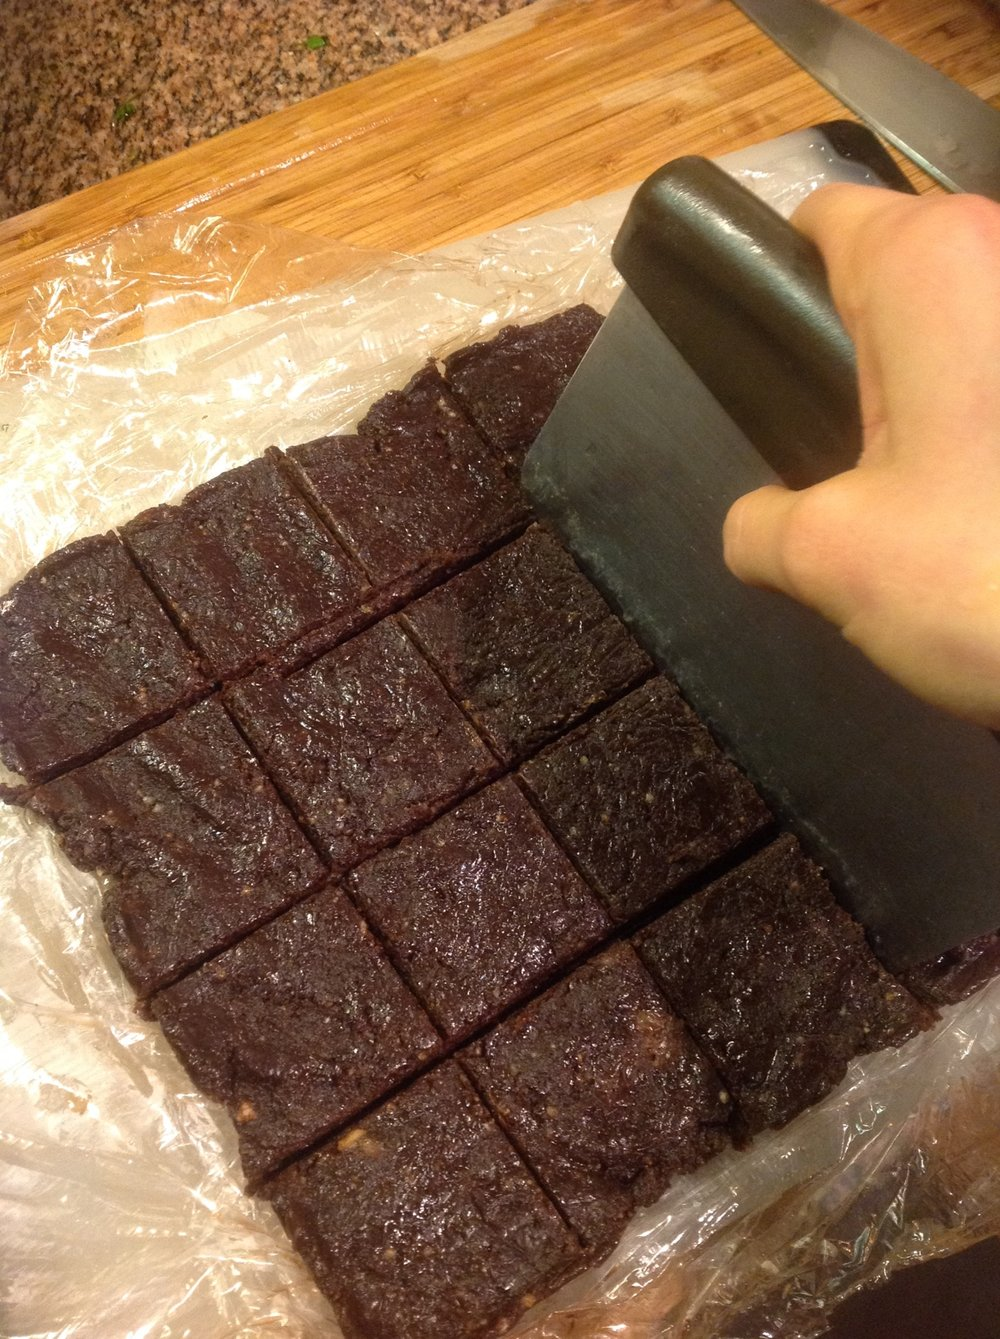 Chef's Tool Tip:   A bench scrape (aka pastry scrape) makes it easy to portion and cut these bars once they've set.  This small gadget is essential for easy, quick cooking